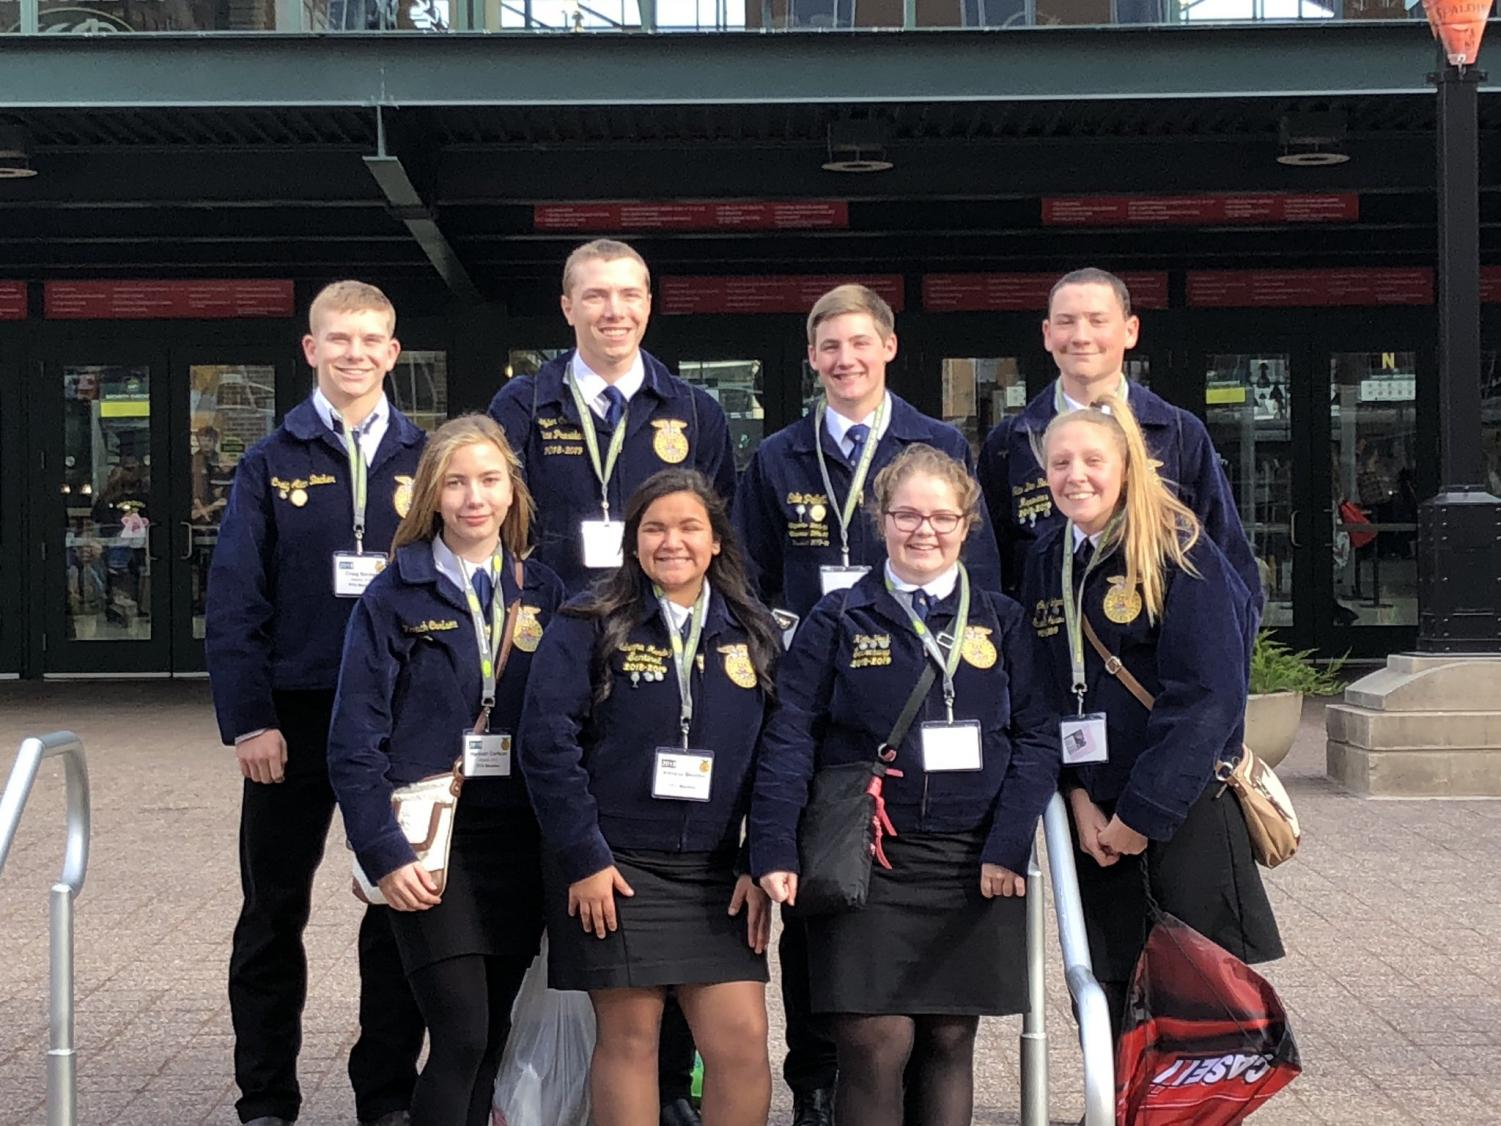 FFA IS LIFE - The seven attending members pose with 2018 graduate Cale Pellett. Pellett was one of two Atlantic alumni to participate in contests at the National Convention this year.